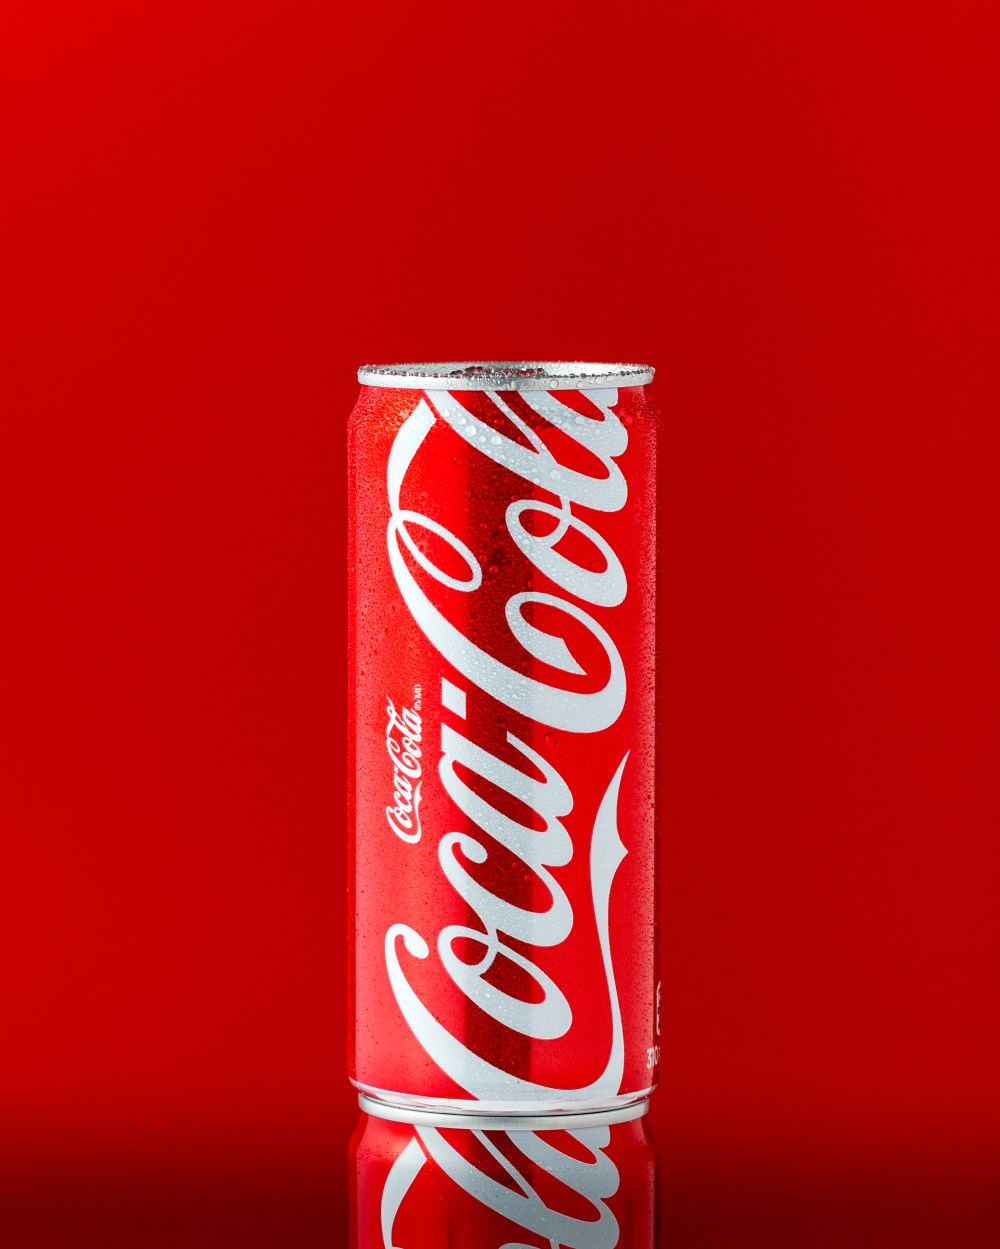 500+ Coca Cola Pictures   Download Free Images on Unsplash